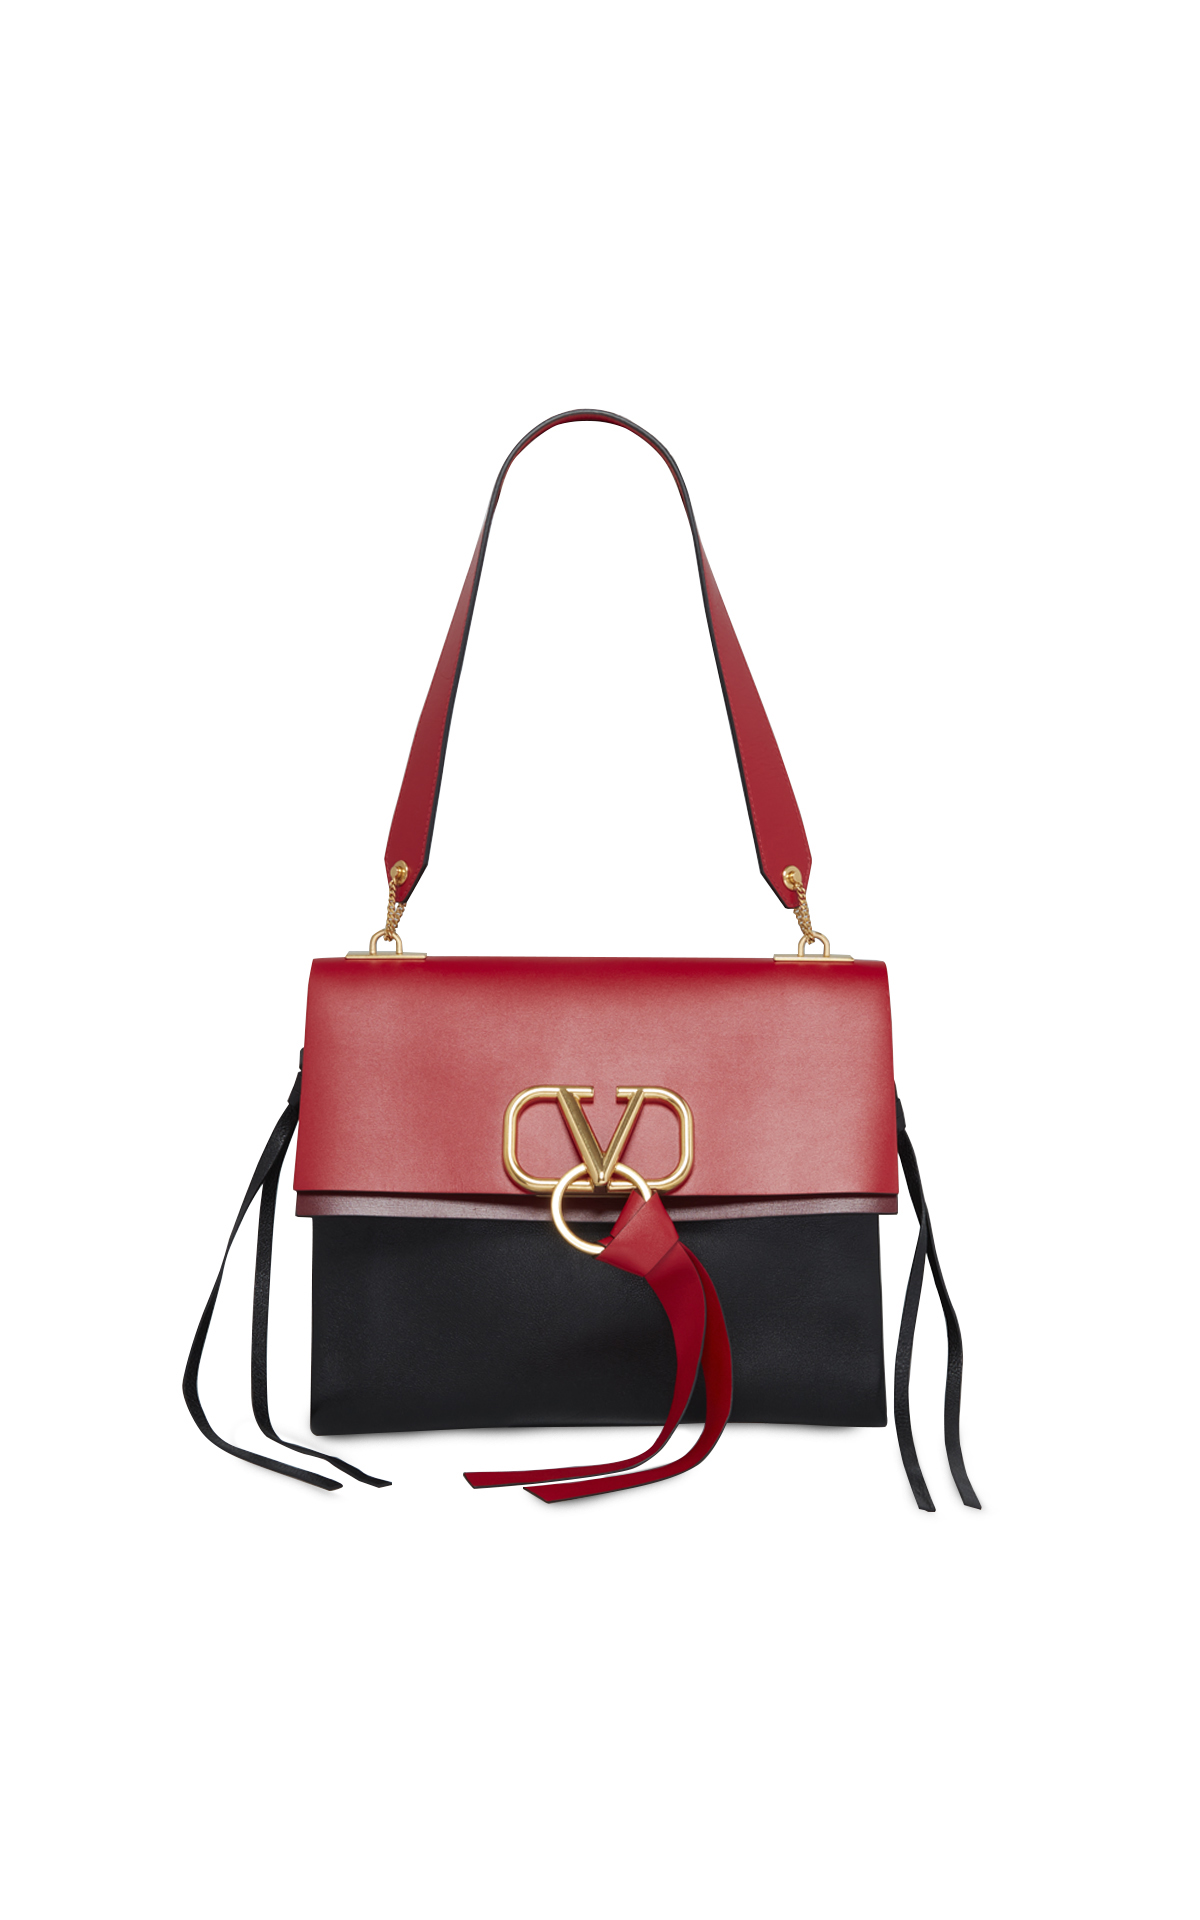 Valentino Black-and-Red Vrings bag, La Vallée Village